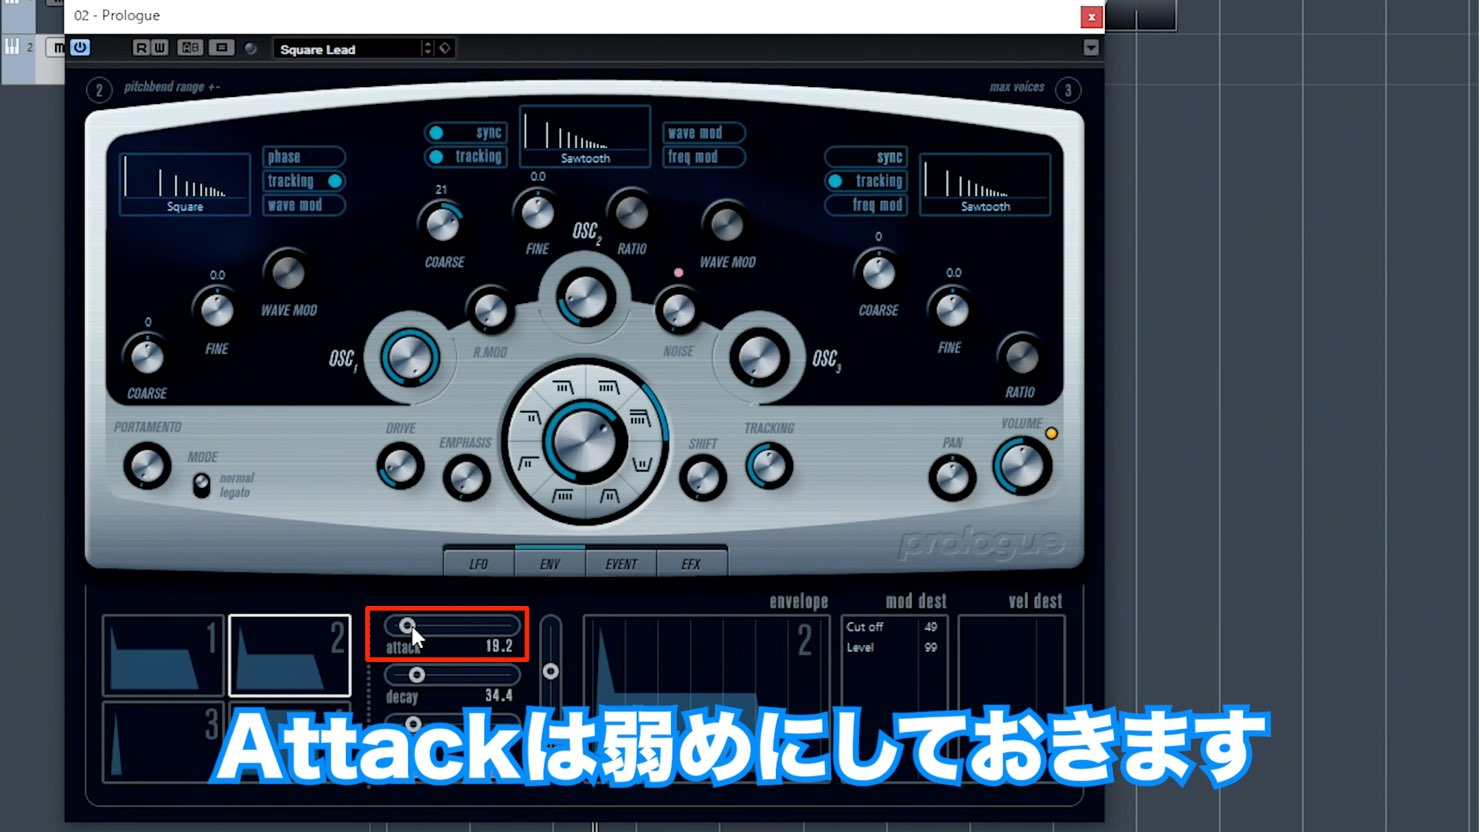 Yusuke-Shirato-Tips-4-Prologue-Attack-Cubase